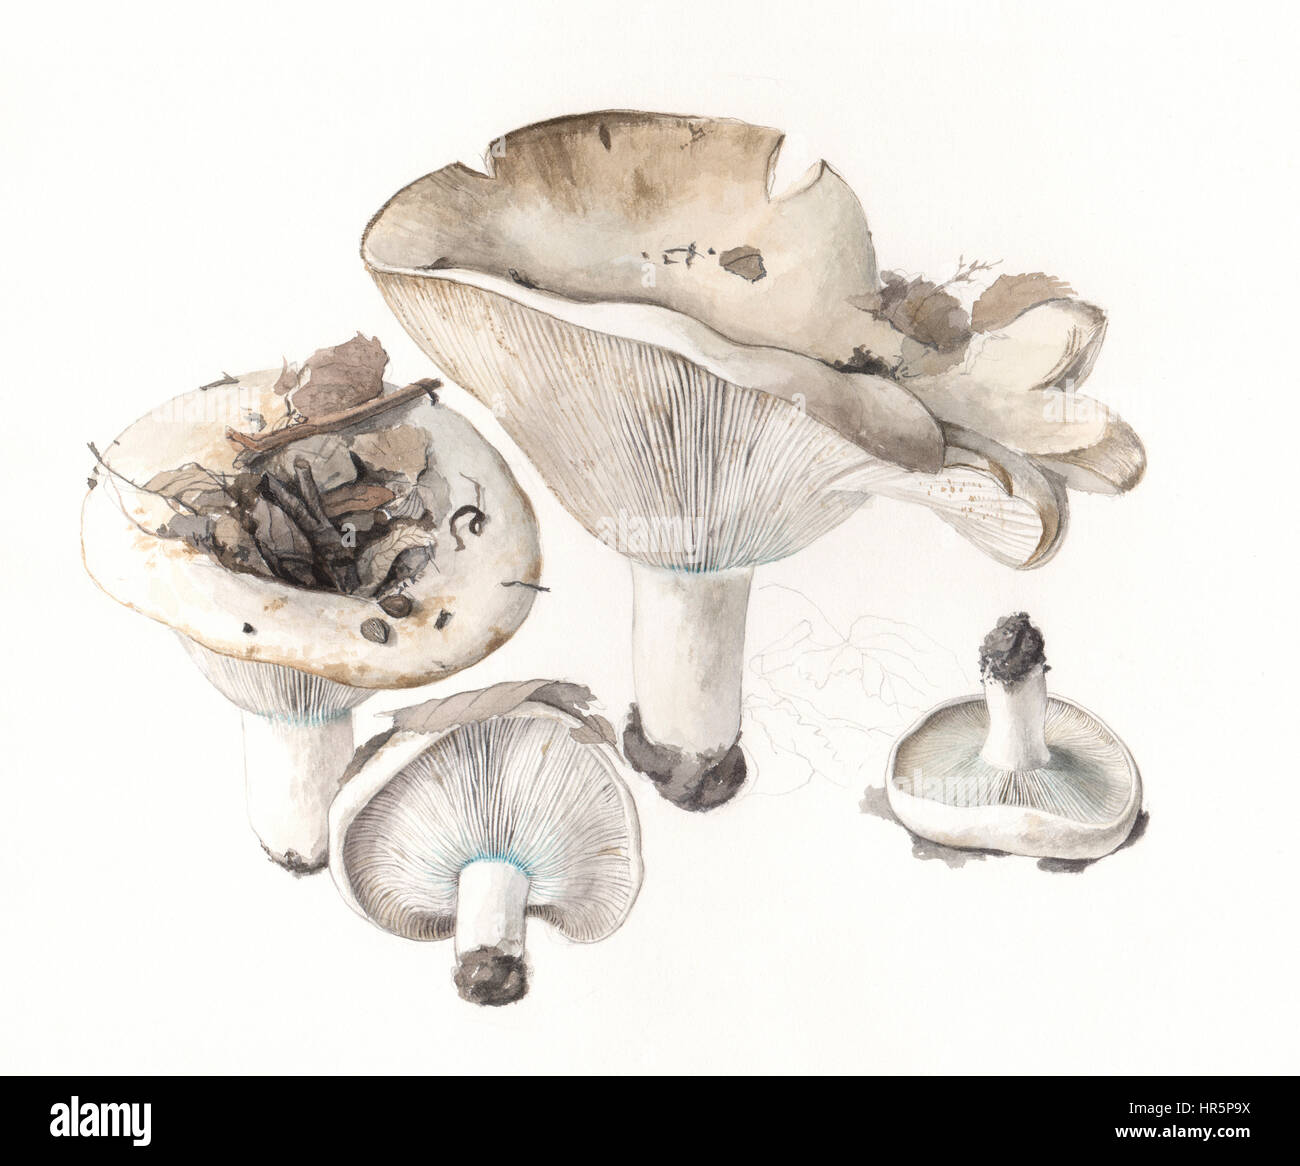 Mushrooms Russula brevipes. Hand painted watercolor illustration of wild mushrooms in natural context, against off - Stock Image